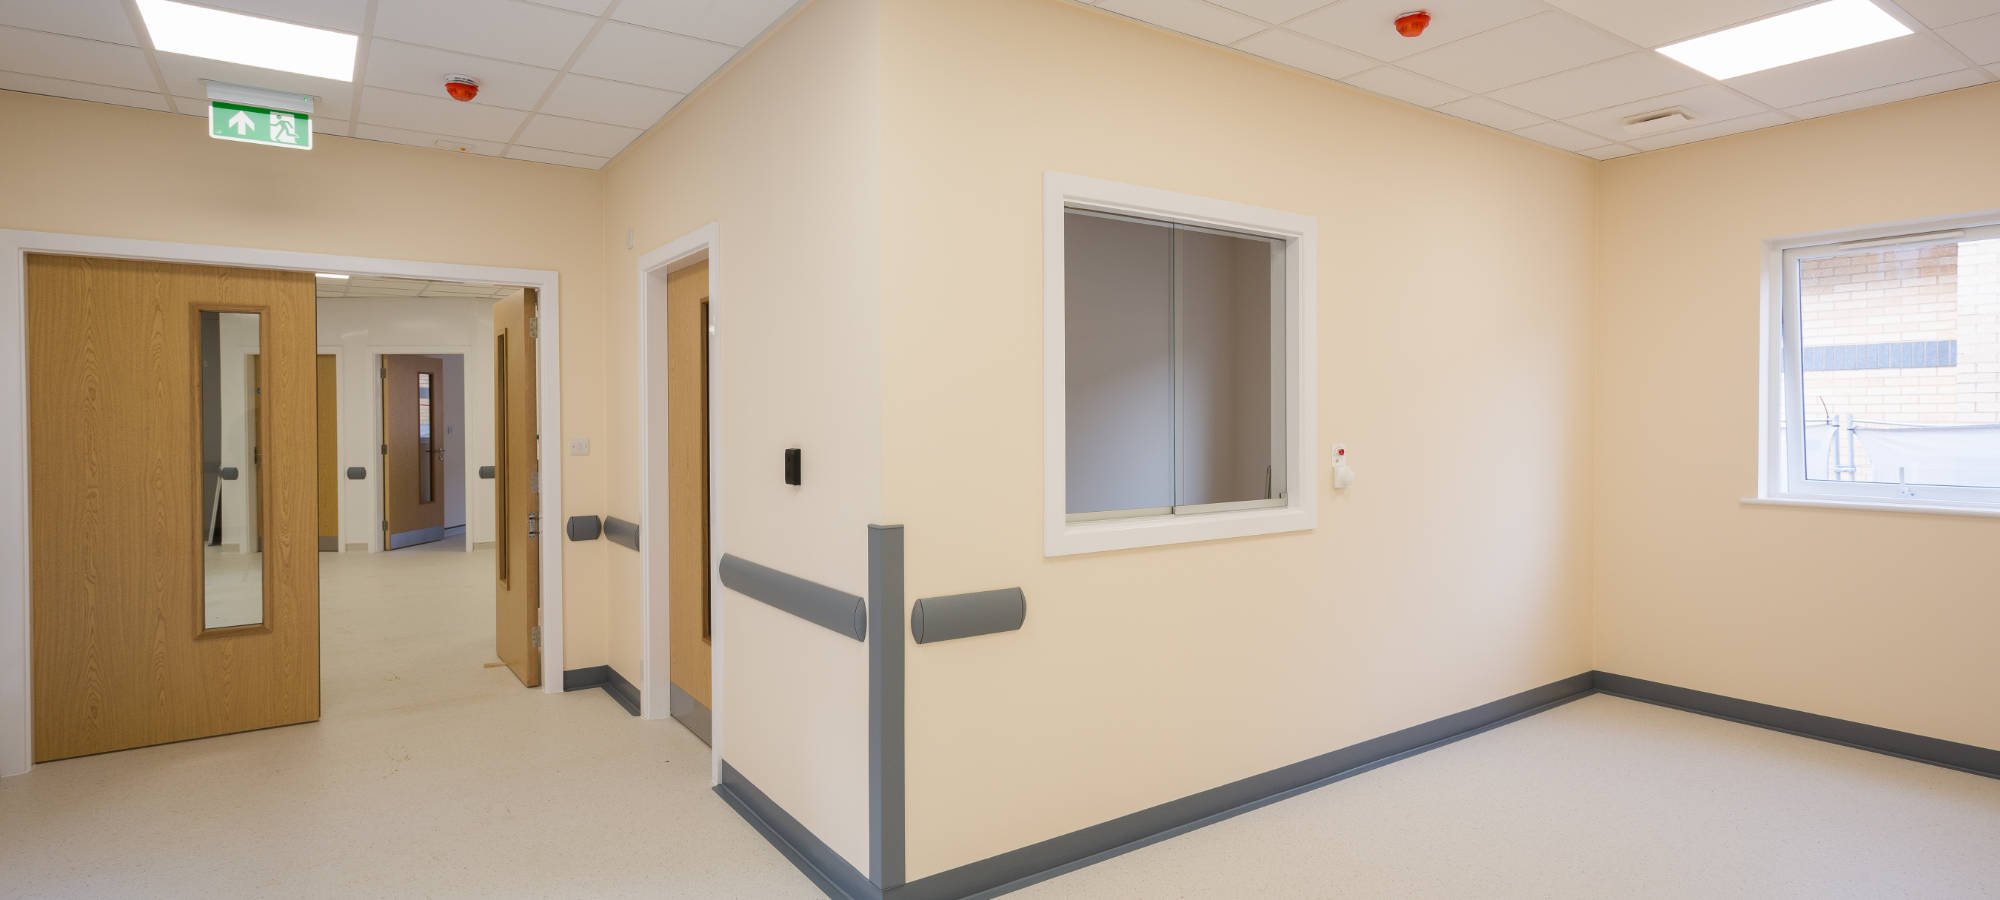 400 sq metre medical facility by Imaging Matters